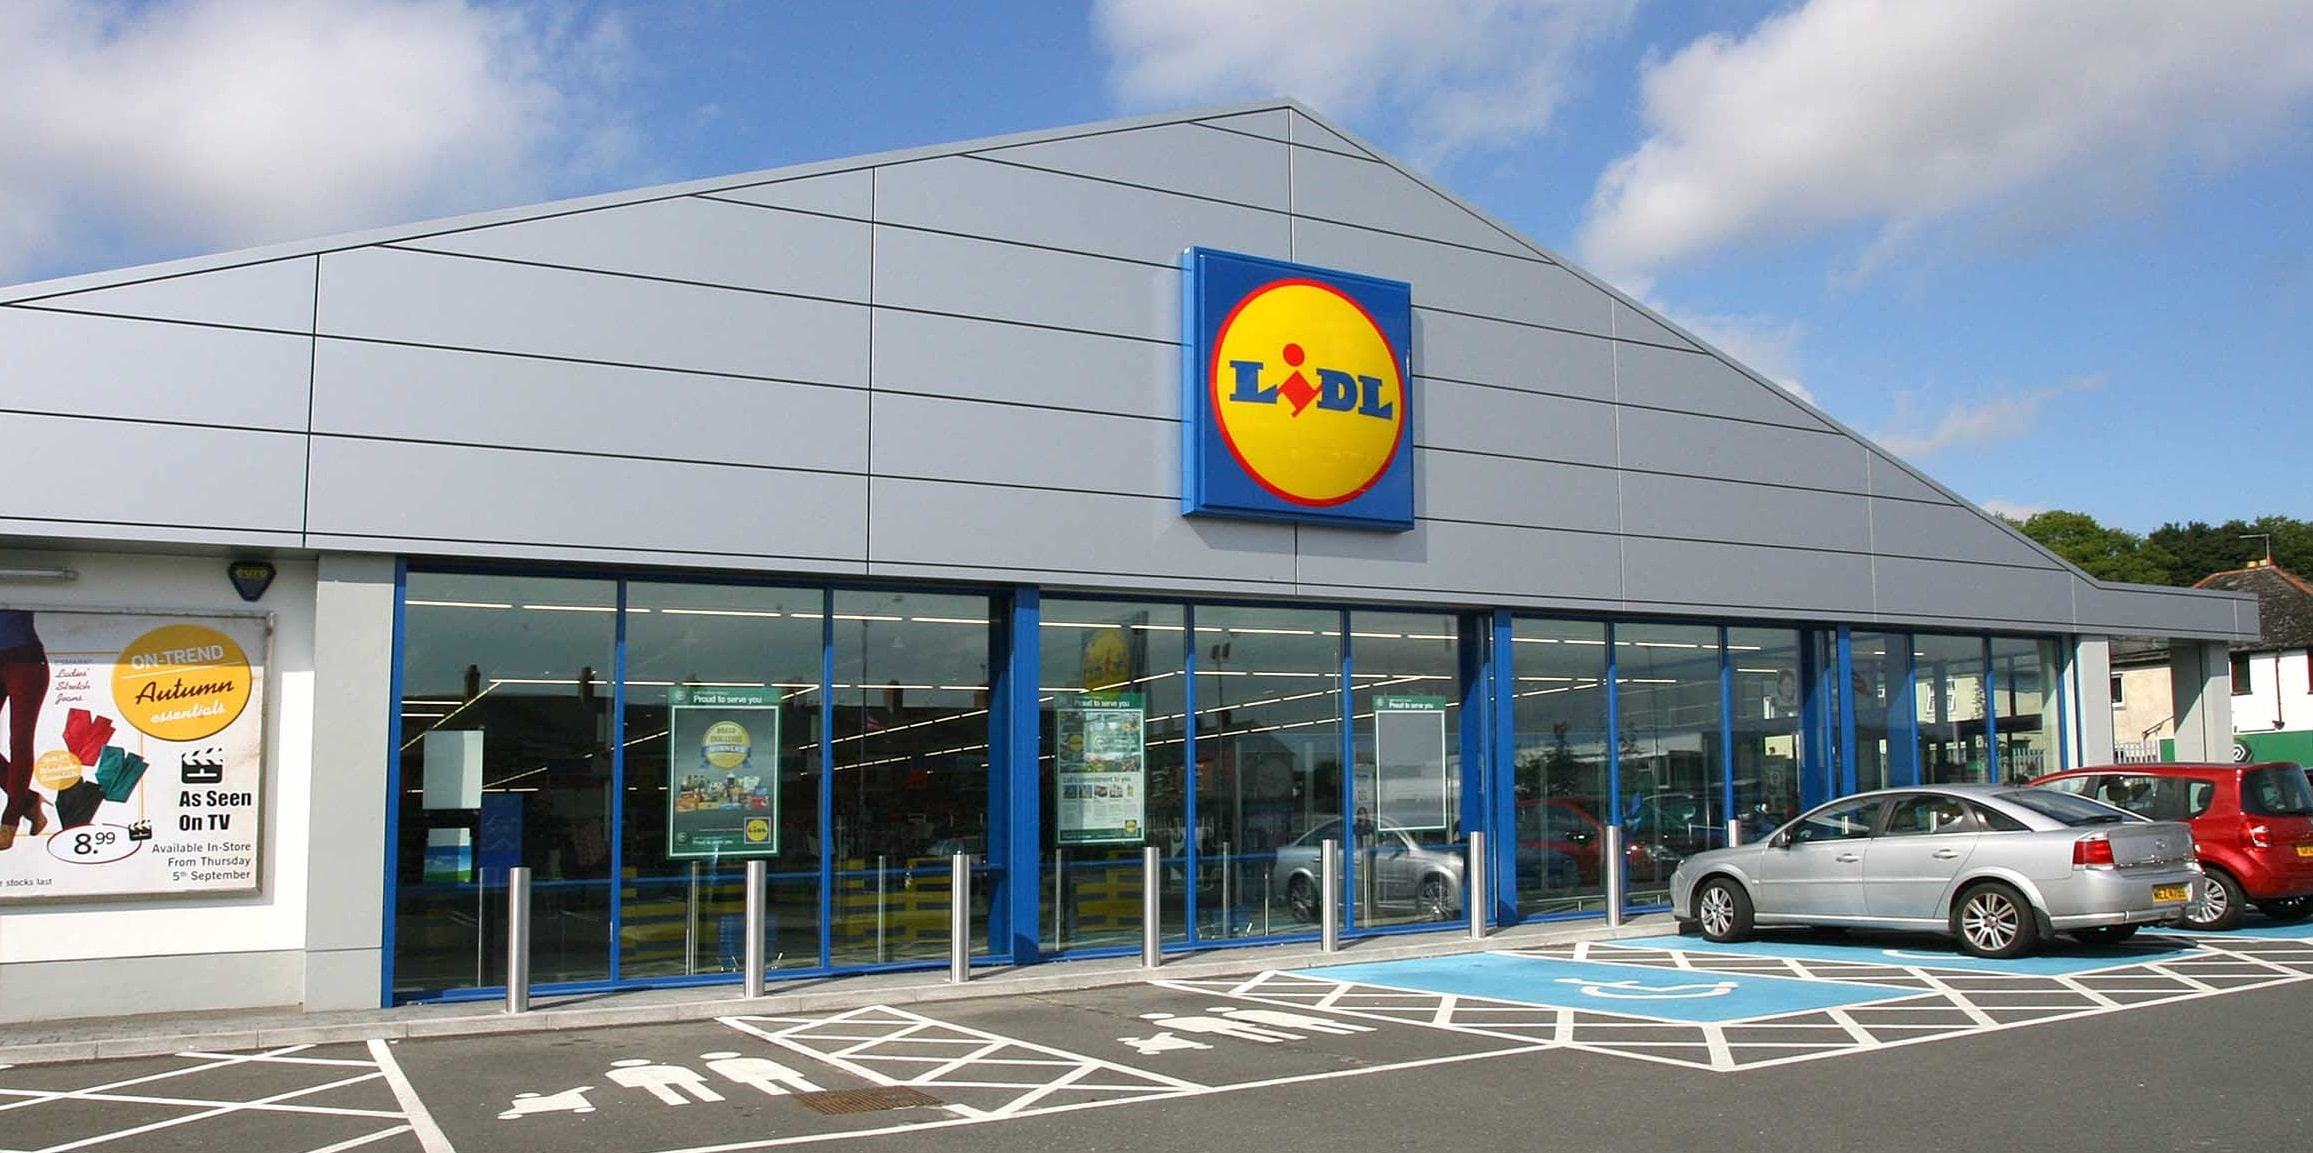 Competition of Lidl and Aldi on the US market | Finance and Markets